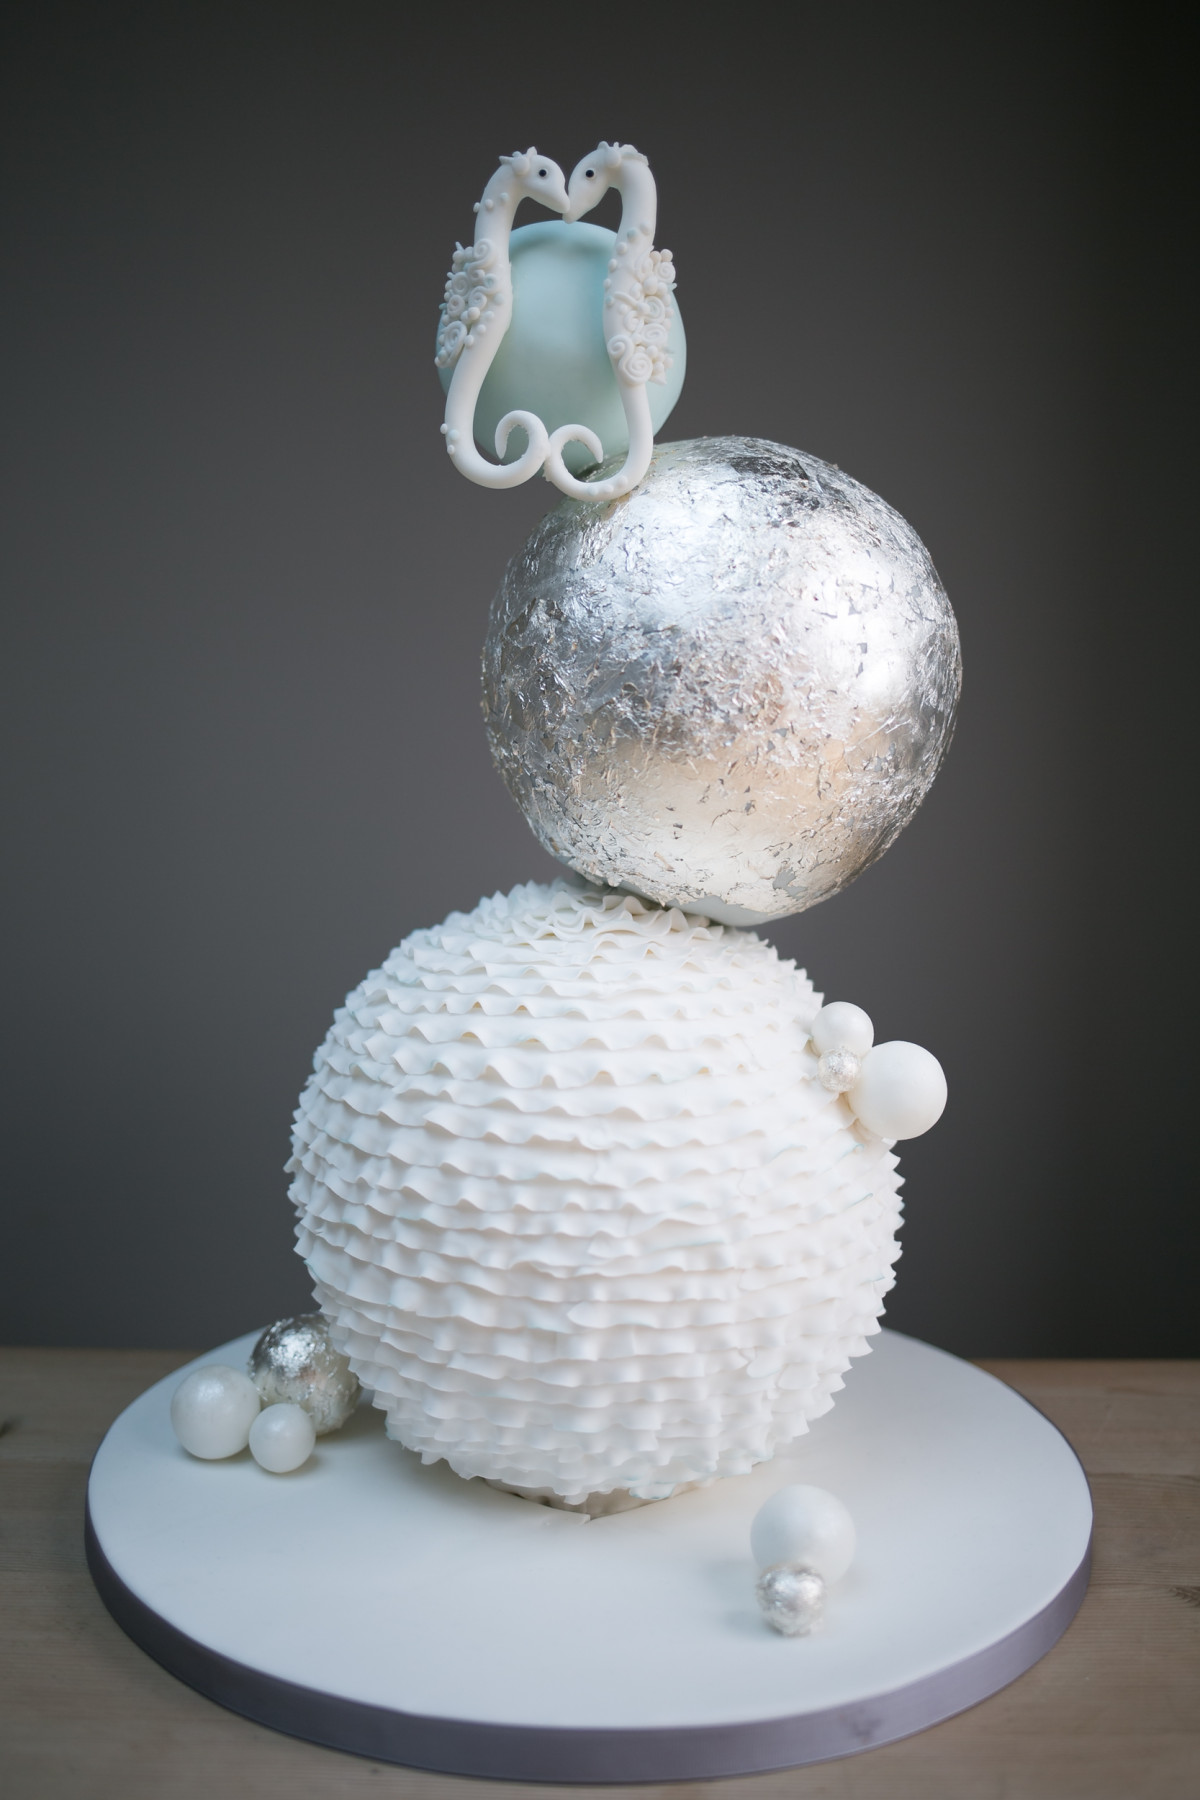 Wedding Cakes Cake By Chloe Henley On Thames - Sphere Wedding Cake